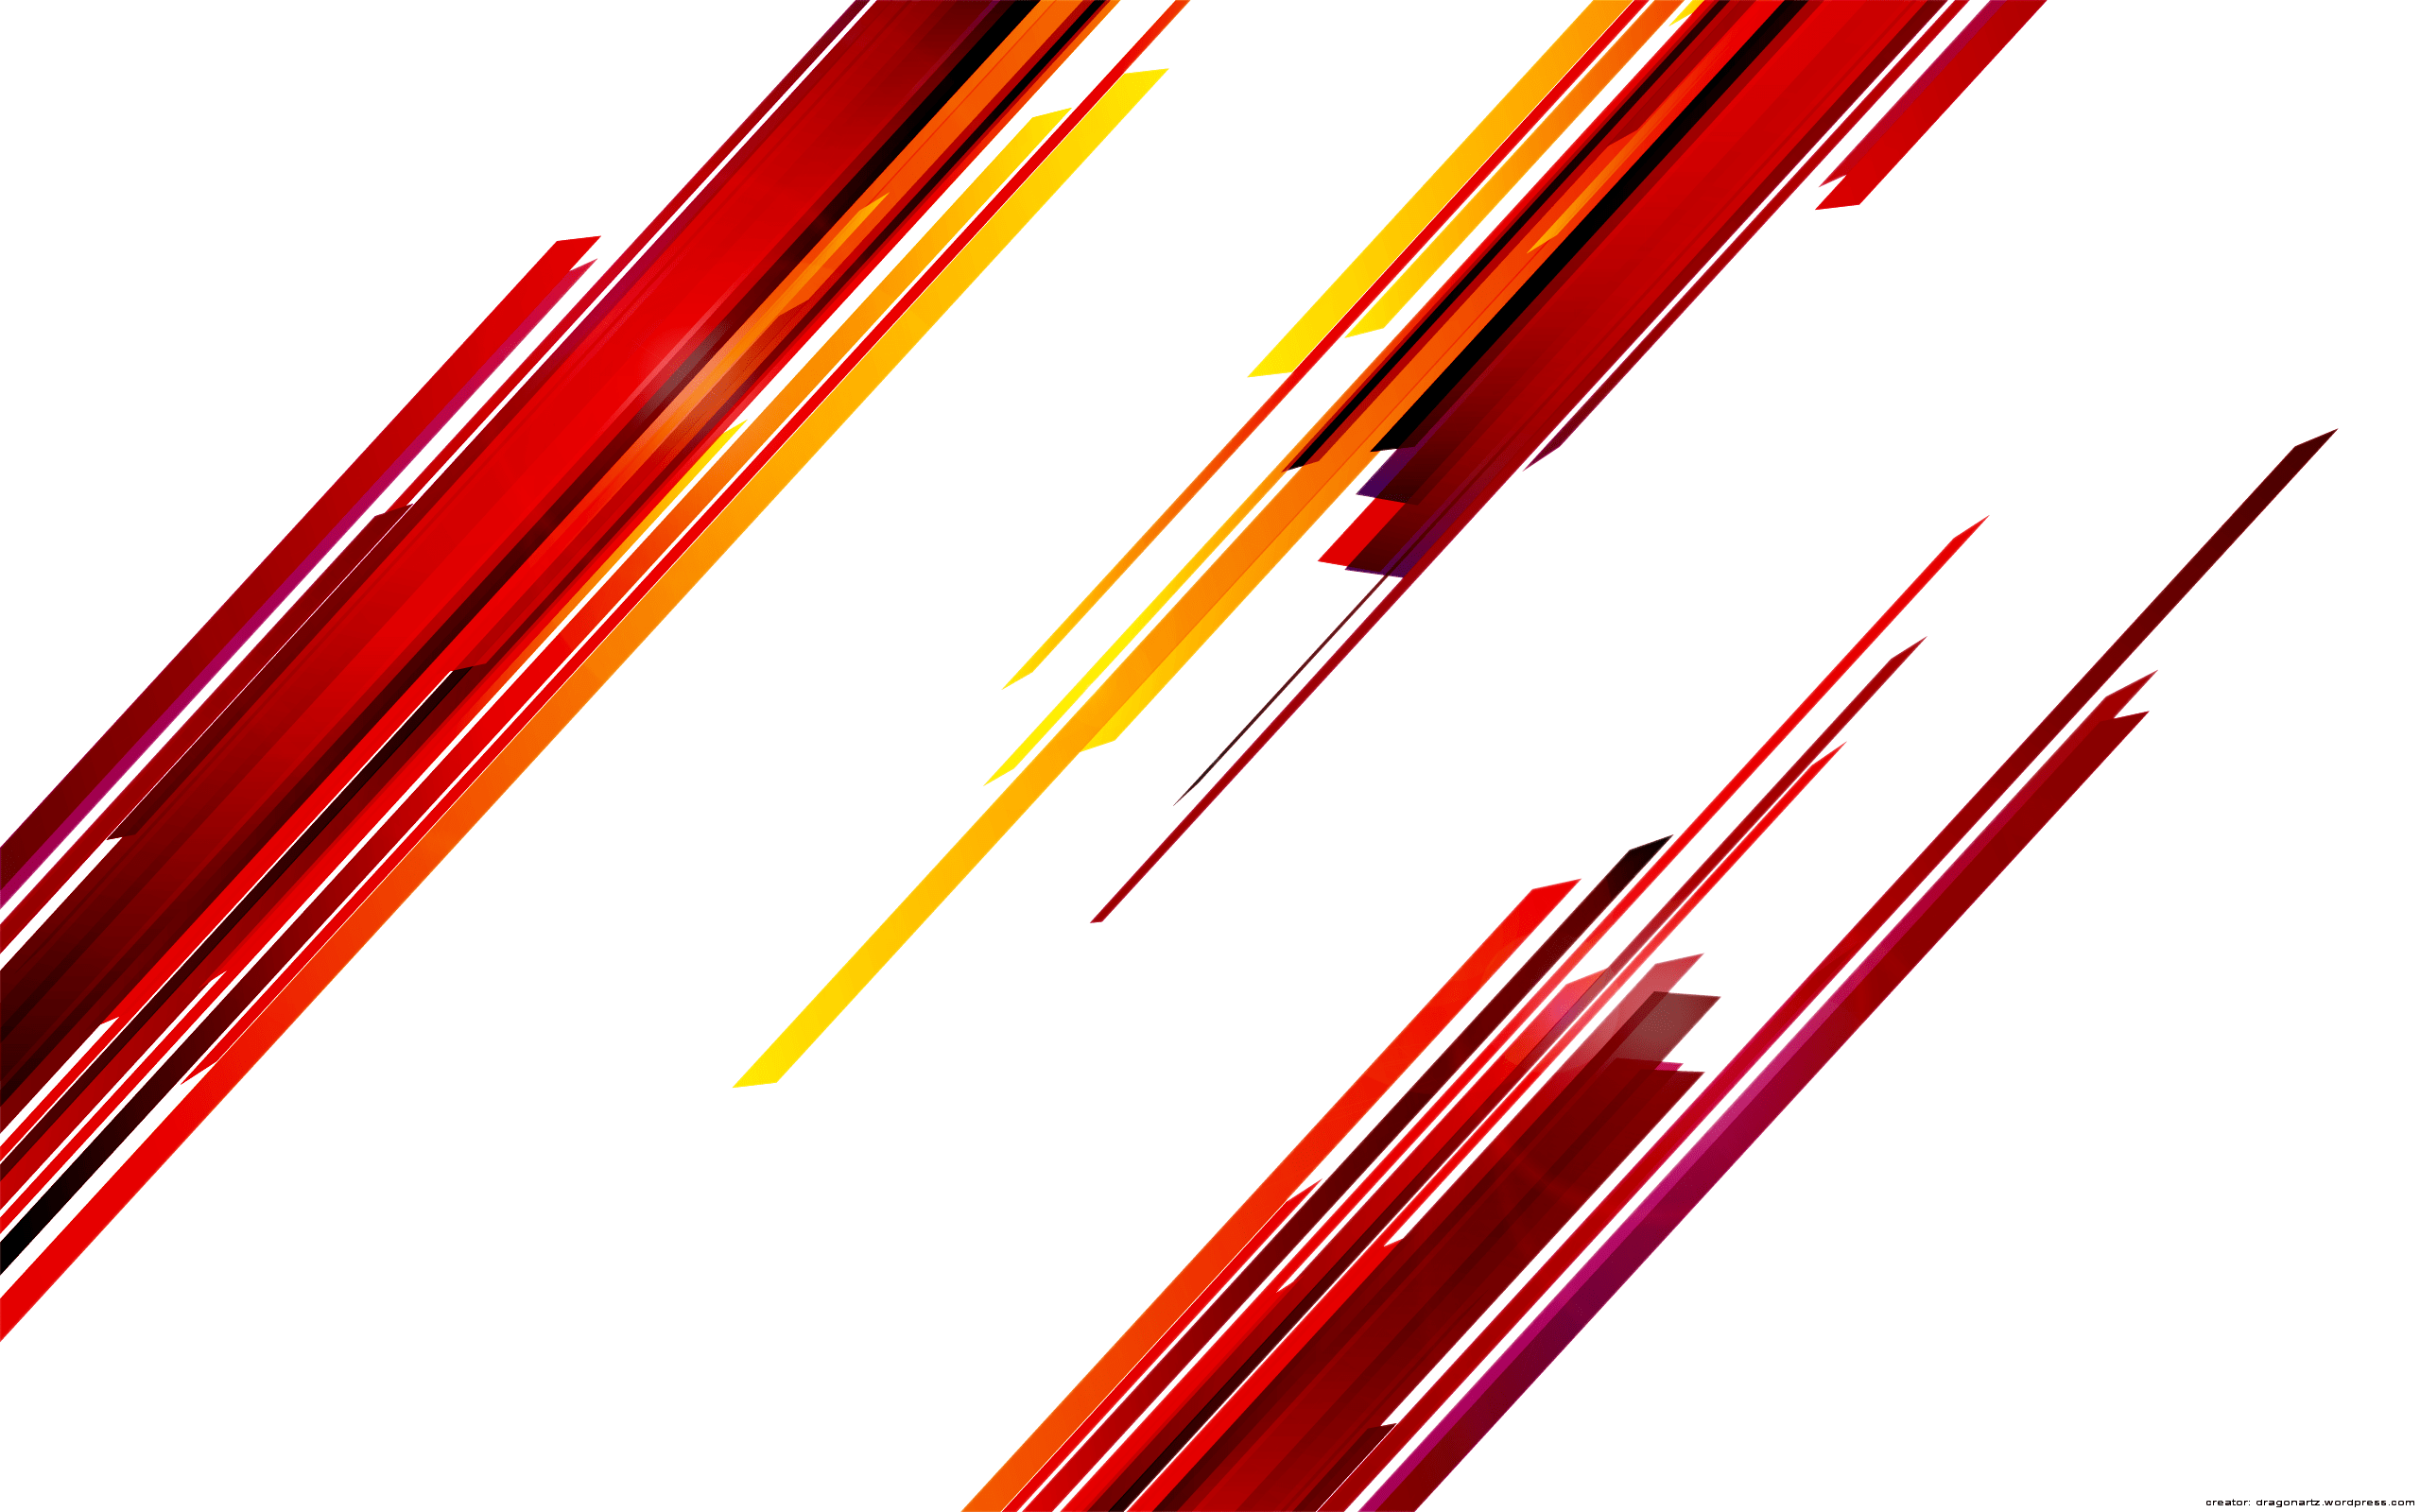 Red White Wallpaper 2560x1600, - Line Abstract Background Png - HD Wallpaper